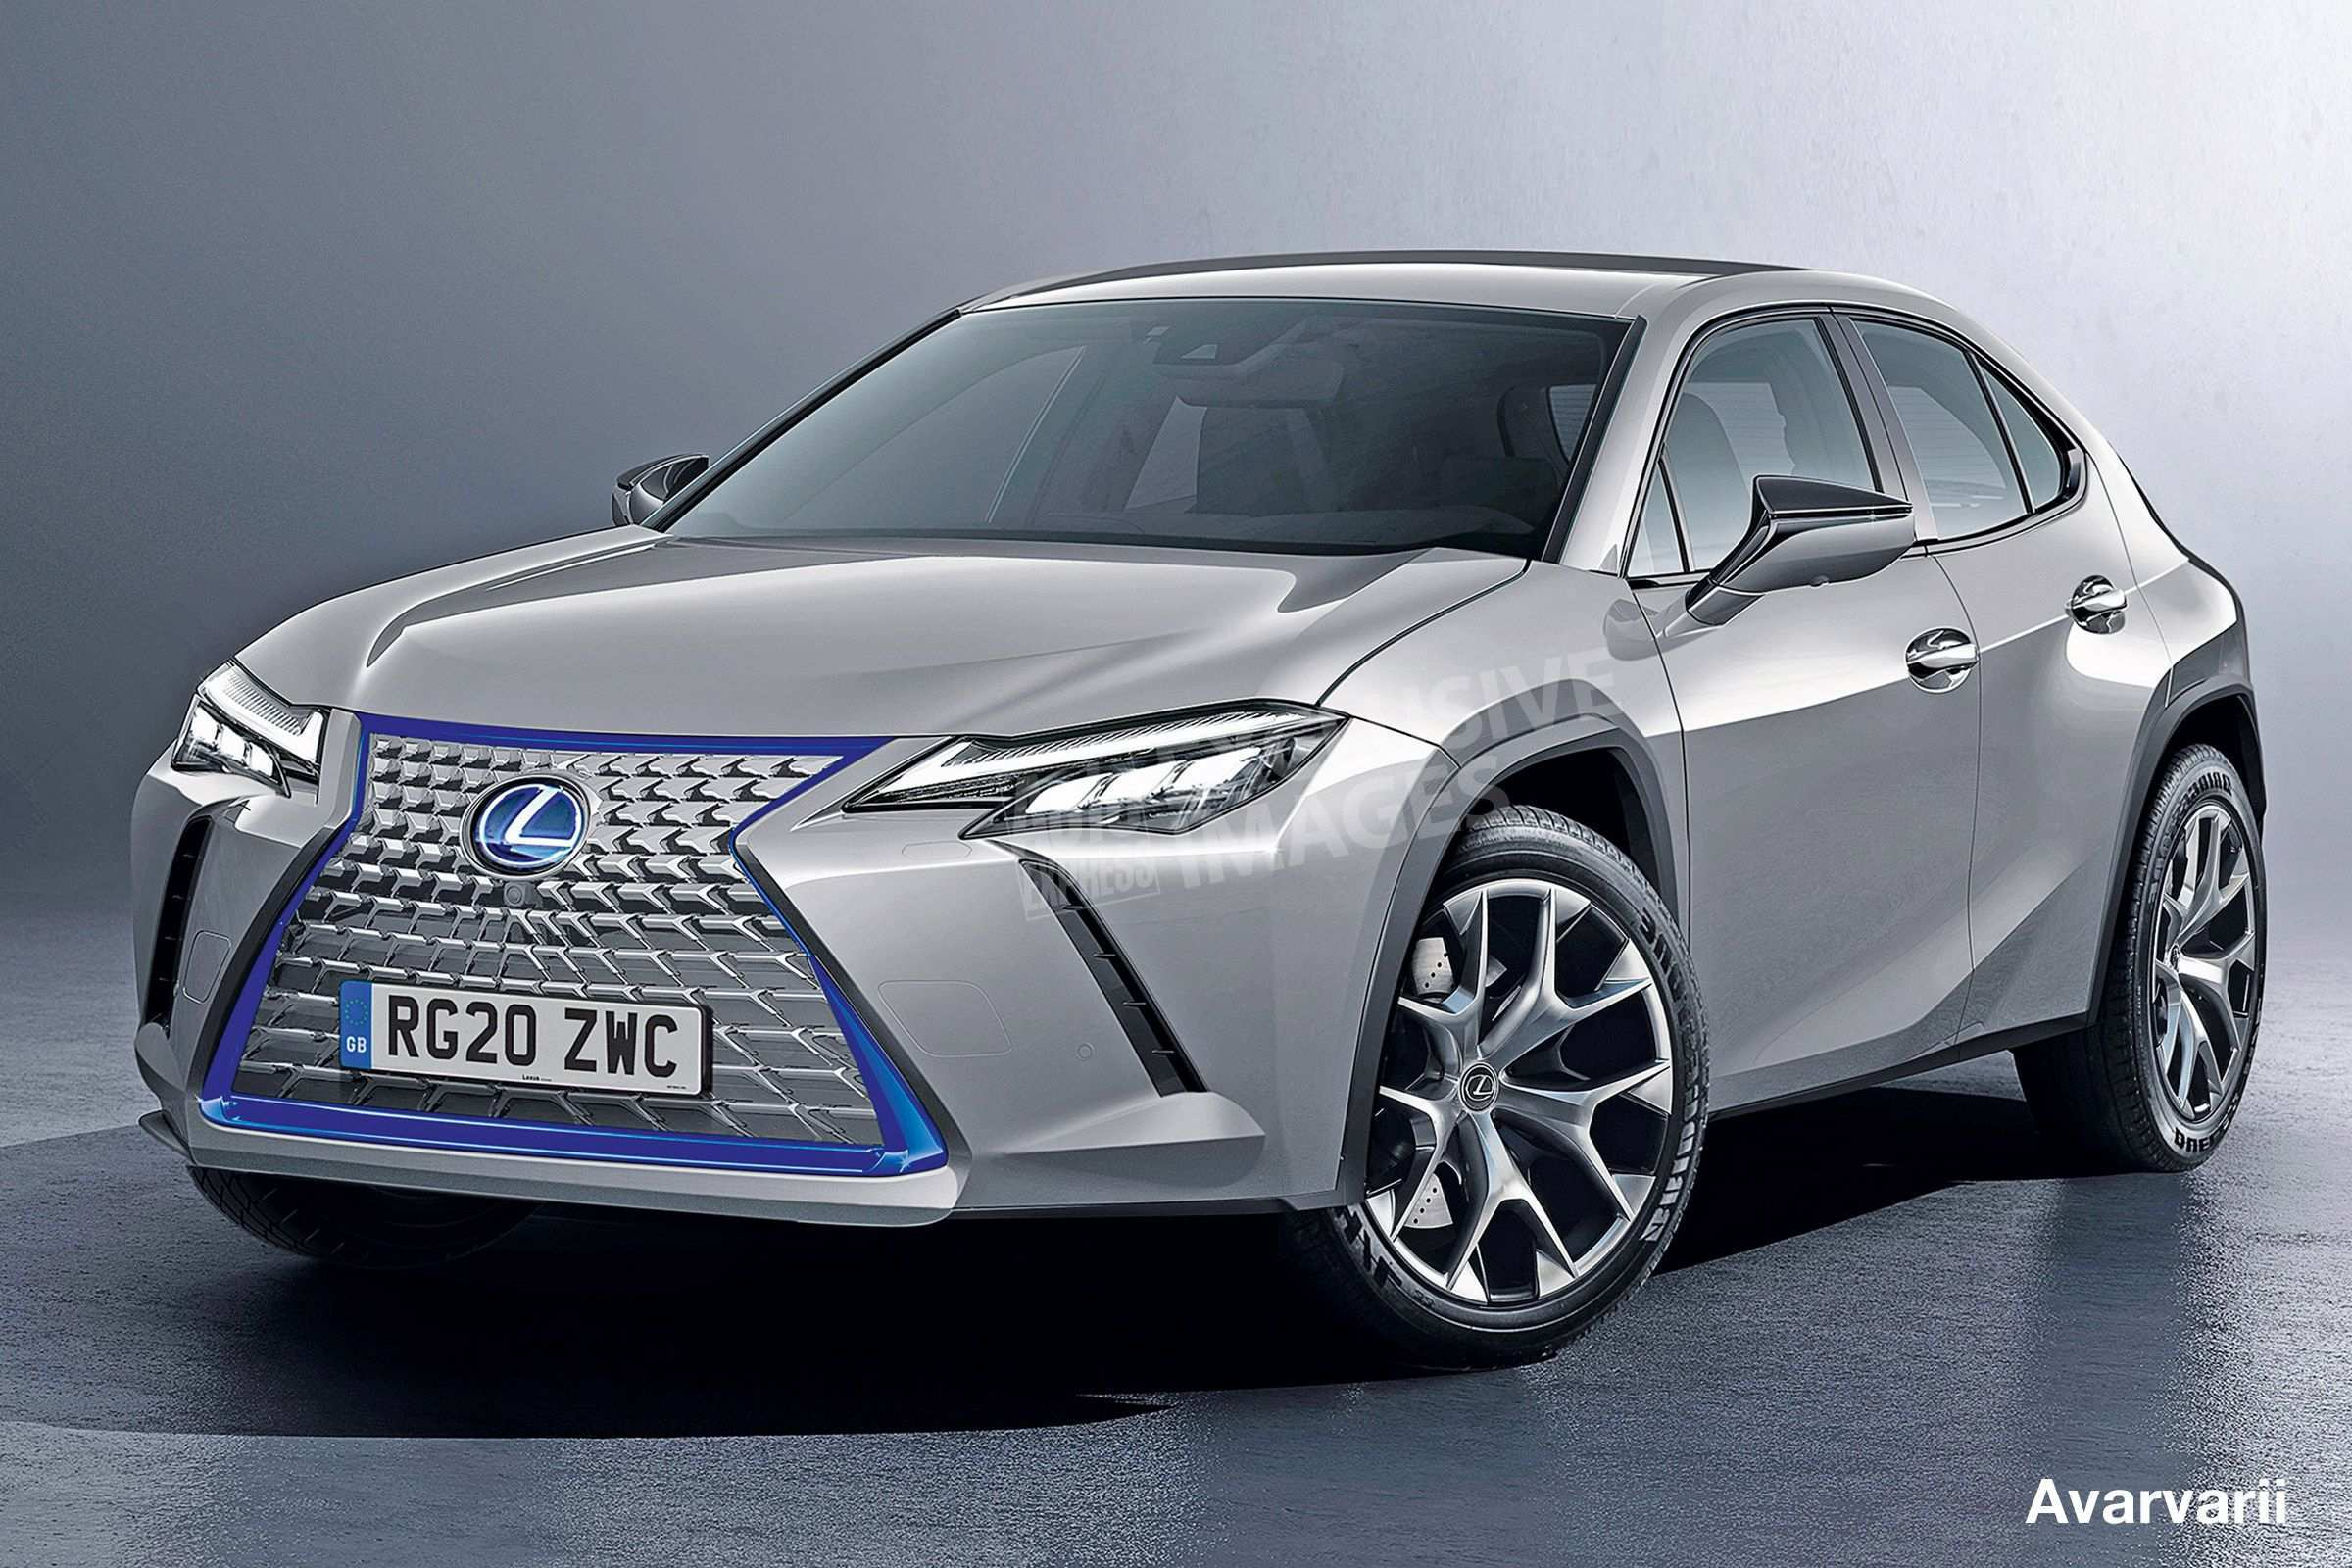 87 Great Lexus 2020 Exterior Overview by Lexus 2020 Exterior